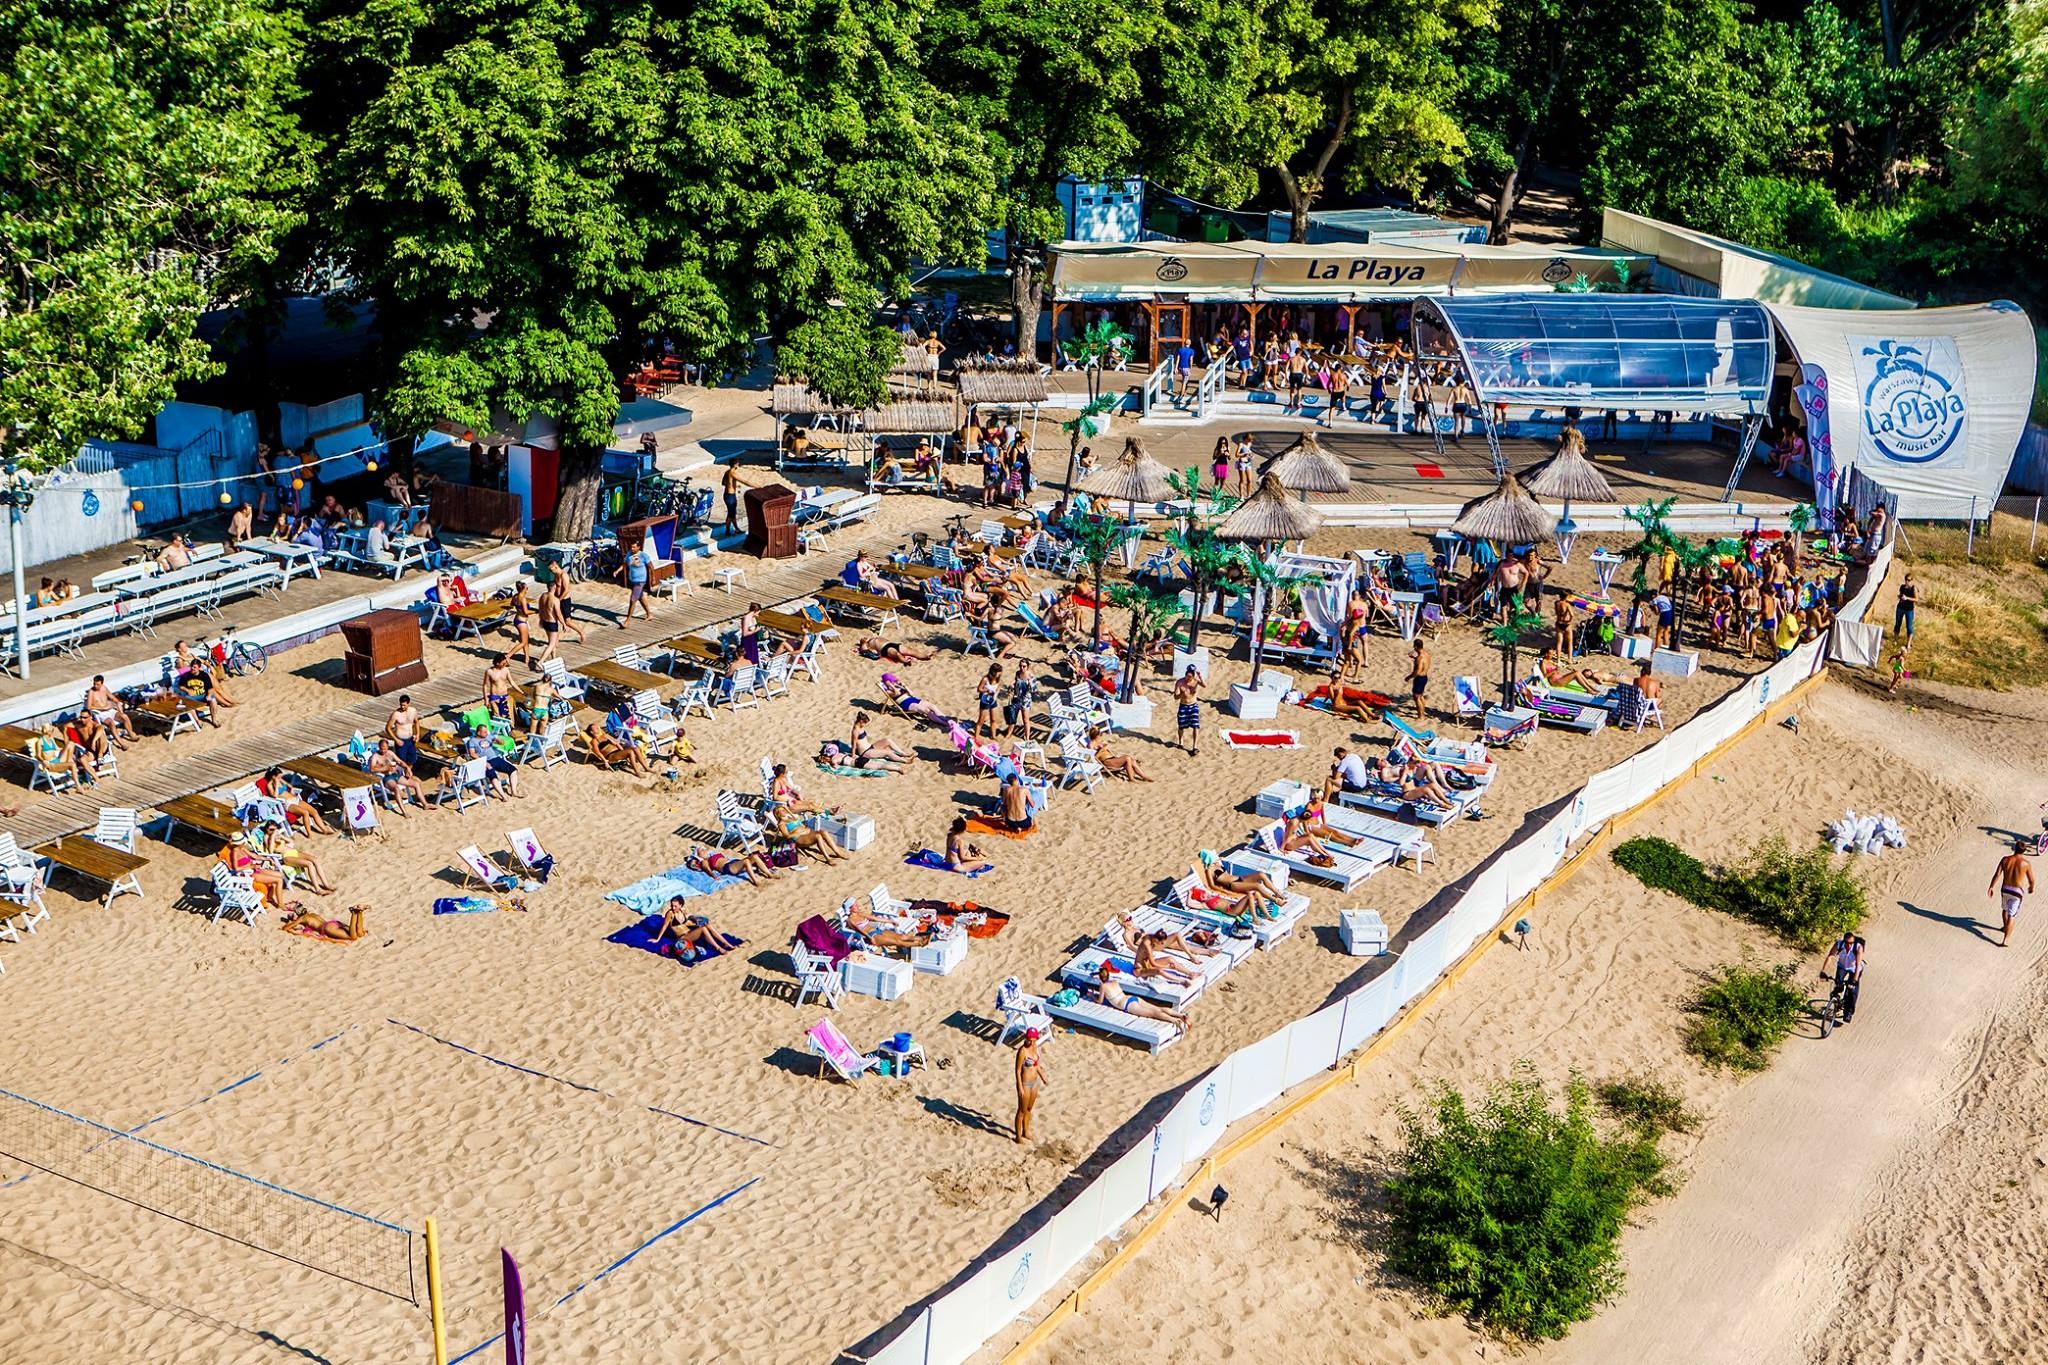 La Playa, beach-party à Varsovie les pieds dans le sable [Praga]